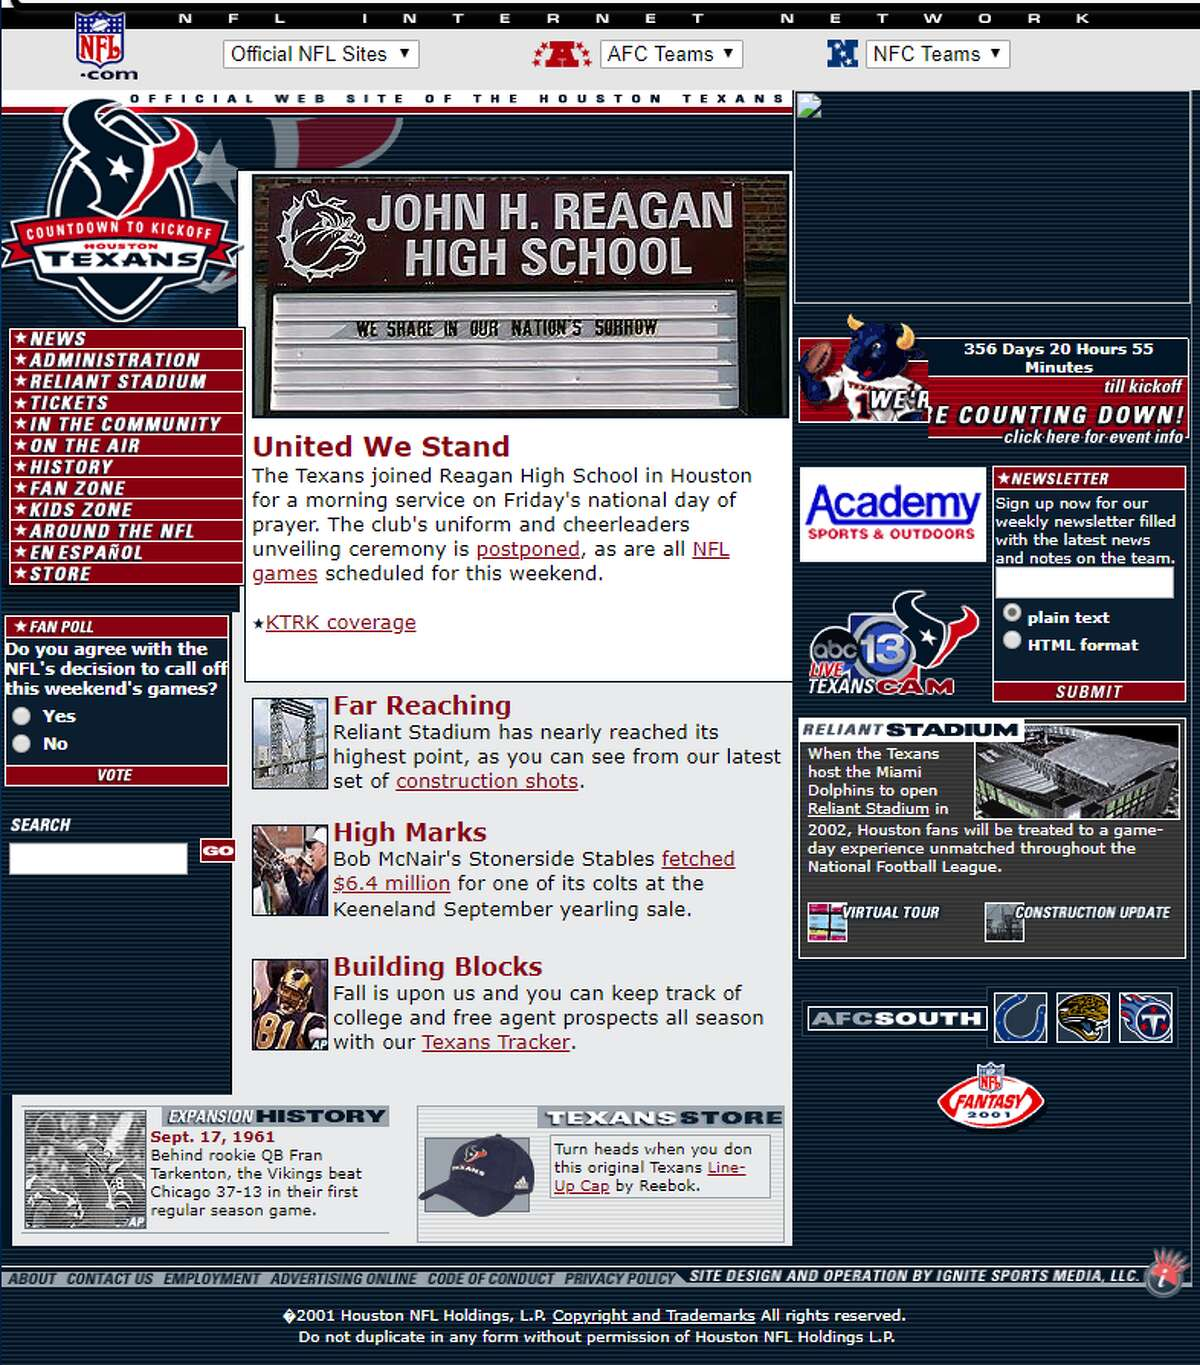 Houston Texans Website: www.HoustonTexans.com Screen capture date: March 25, 2002 >>>Click through to see how the look for websites of various Houston organizations and businesses looked 15 to 20 years ago.